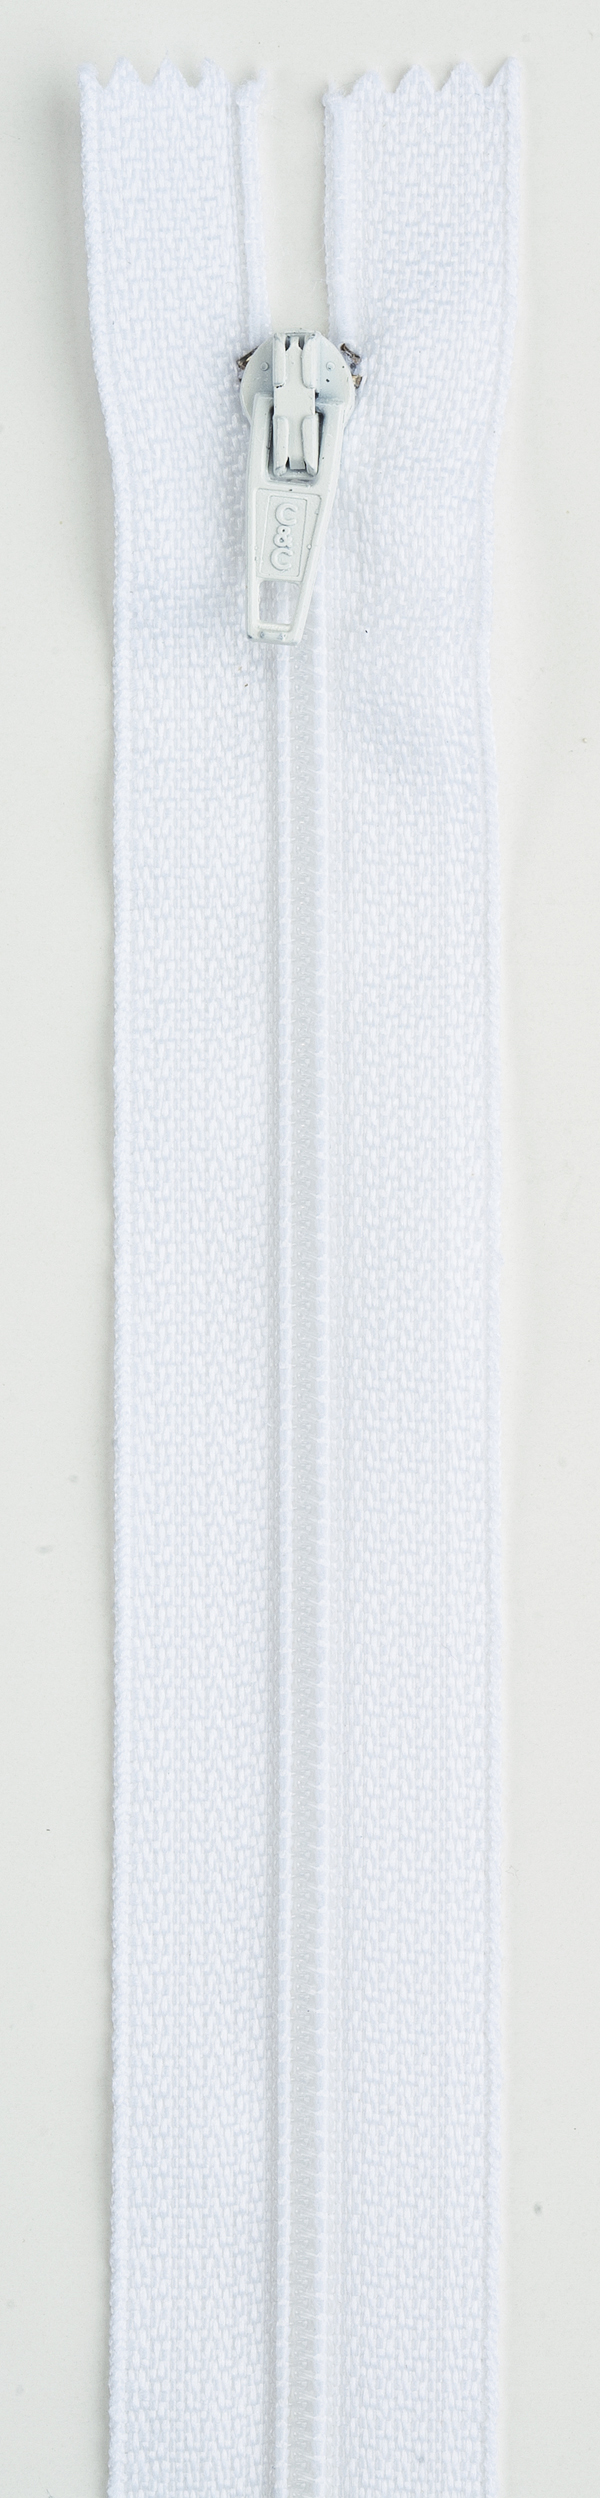 Coats & Clark All-Purpose Plastic Zipper 14\u0022 , White